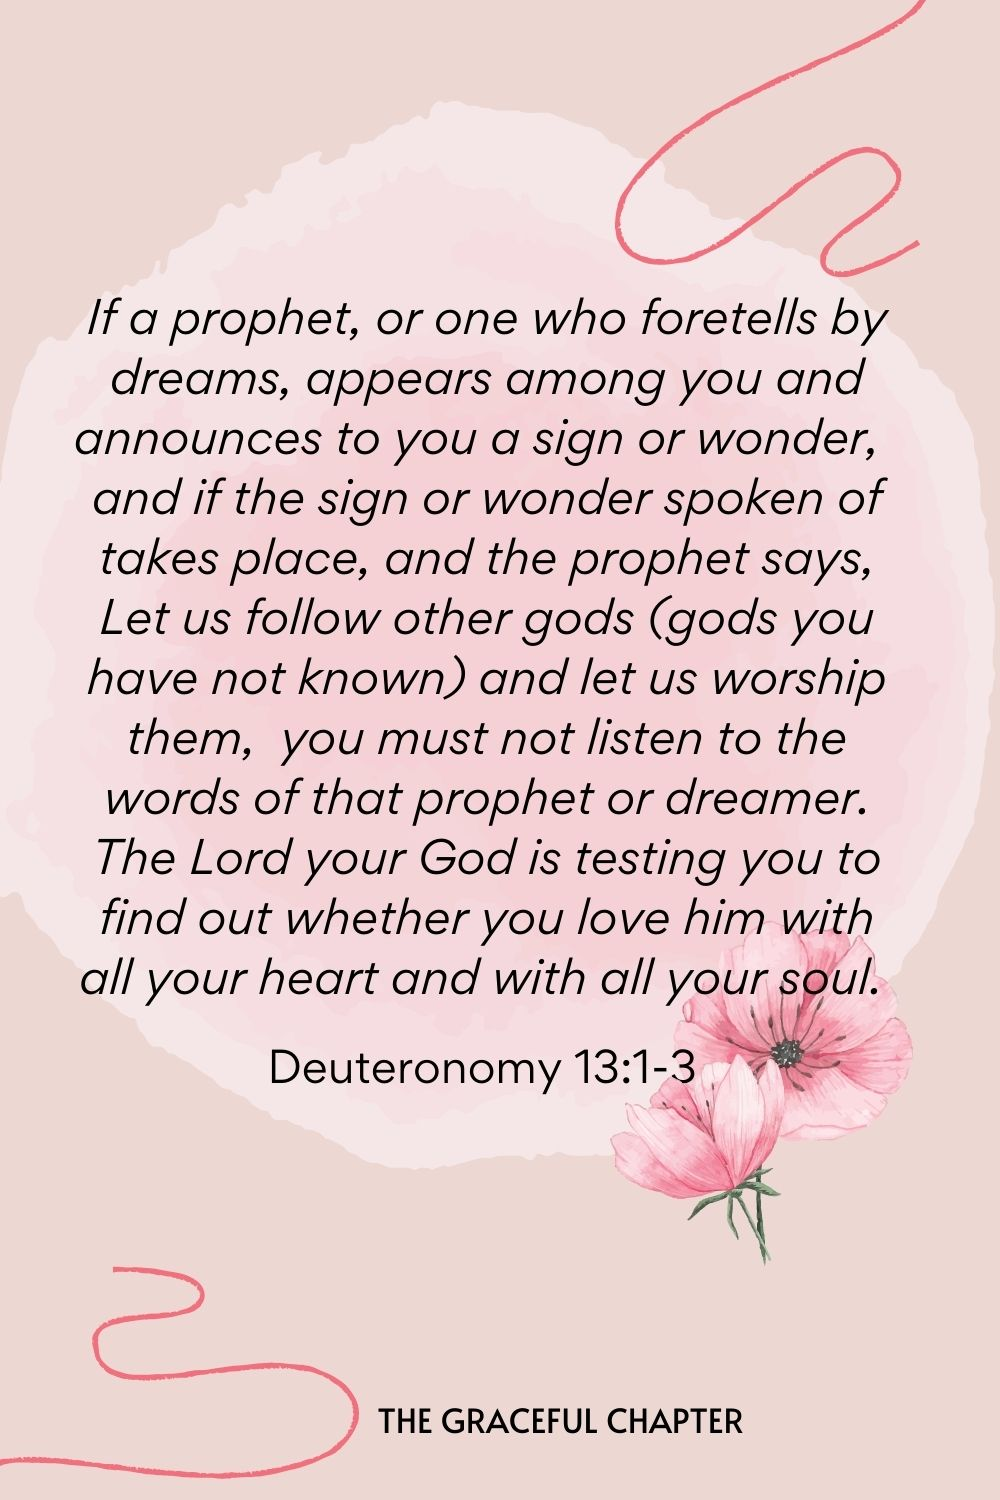 If a prophet, or one who foretells by dreams, appears among you and announces to you a sign or wonder, and if the sign or wonder spoken of takes place, and the prophet says, Let us follow other gods (gods you have not known) and let us worship them, you must not listen to the words of that prophet or dreamer. The Lord your God is testing you to find out whether you love him with all your heart and with all your soul.  Deuteronomy 13:1-3